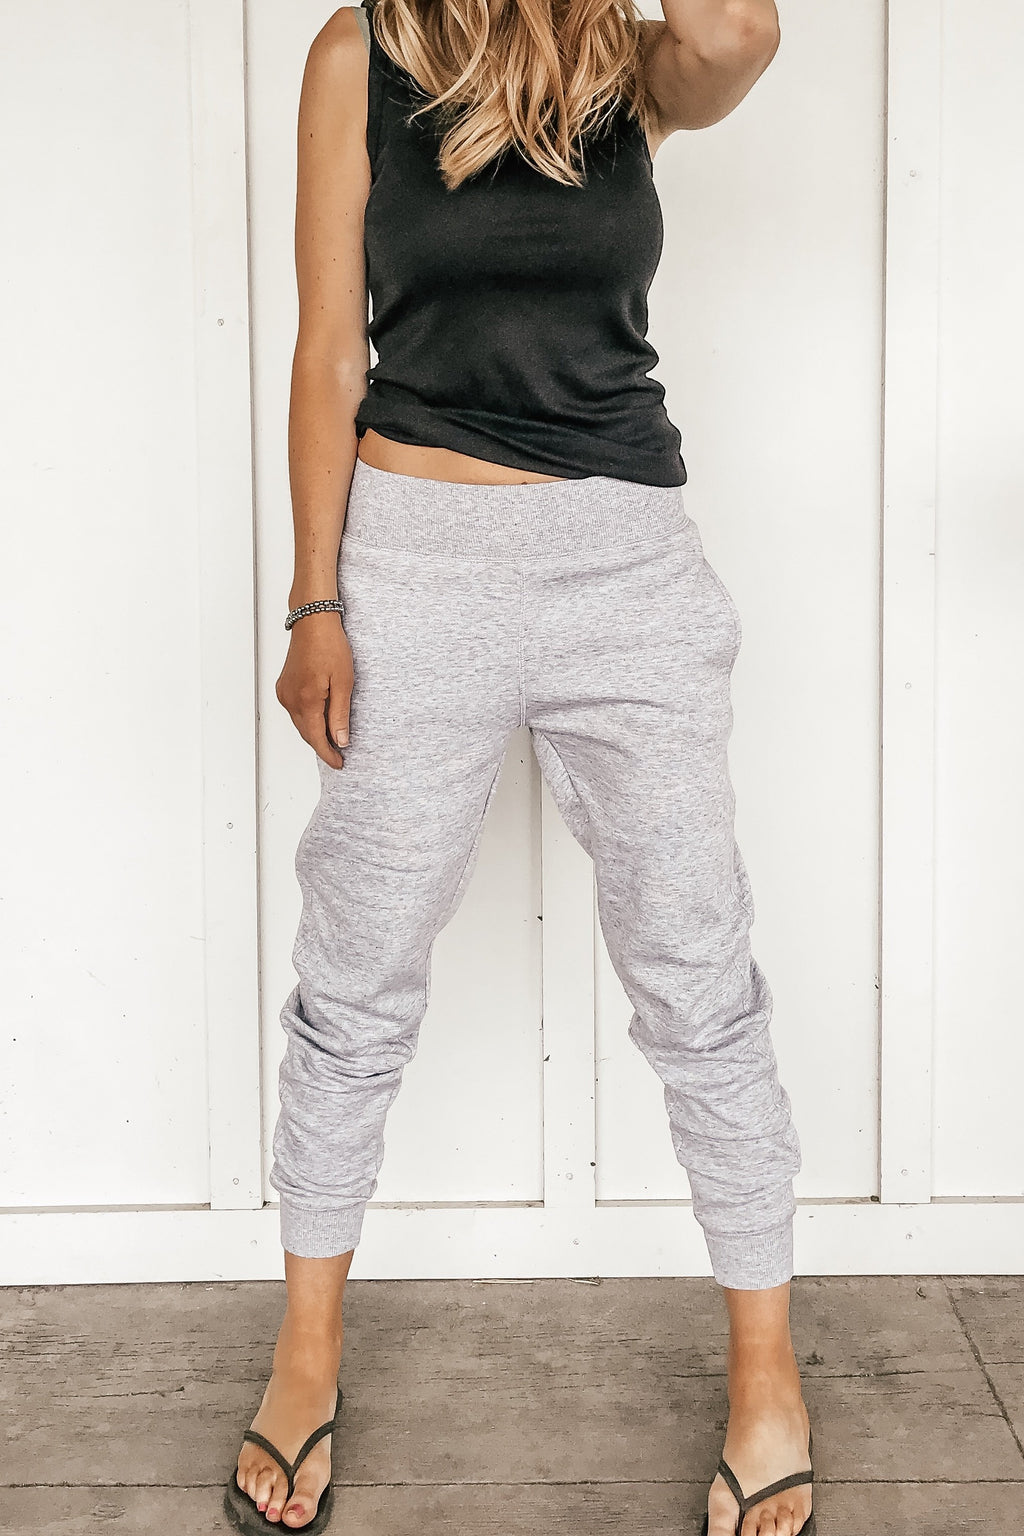 Back to the Basics Joggers in Gray and Black - LURE Boutique